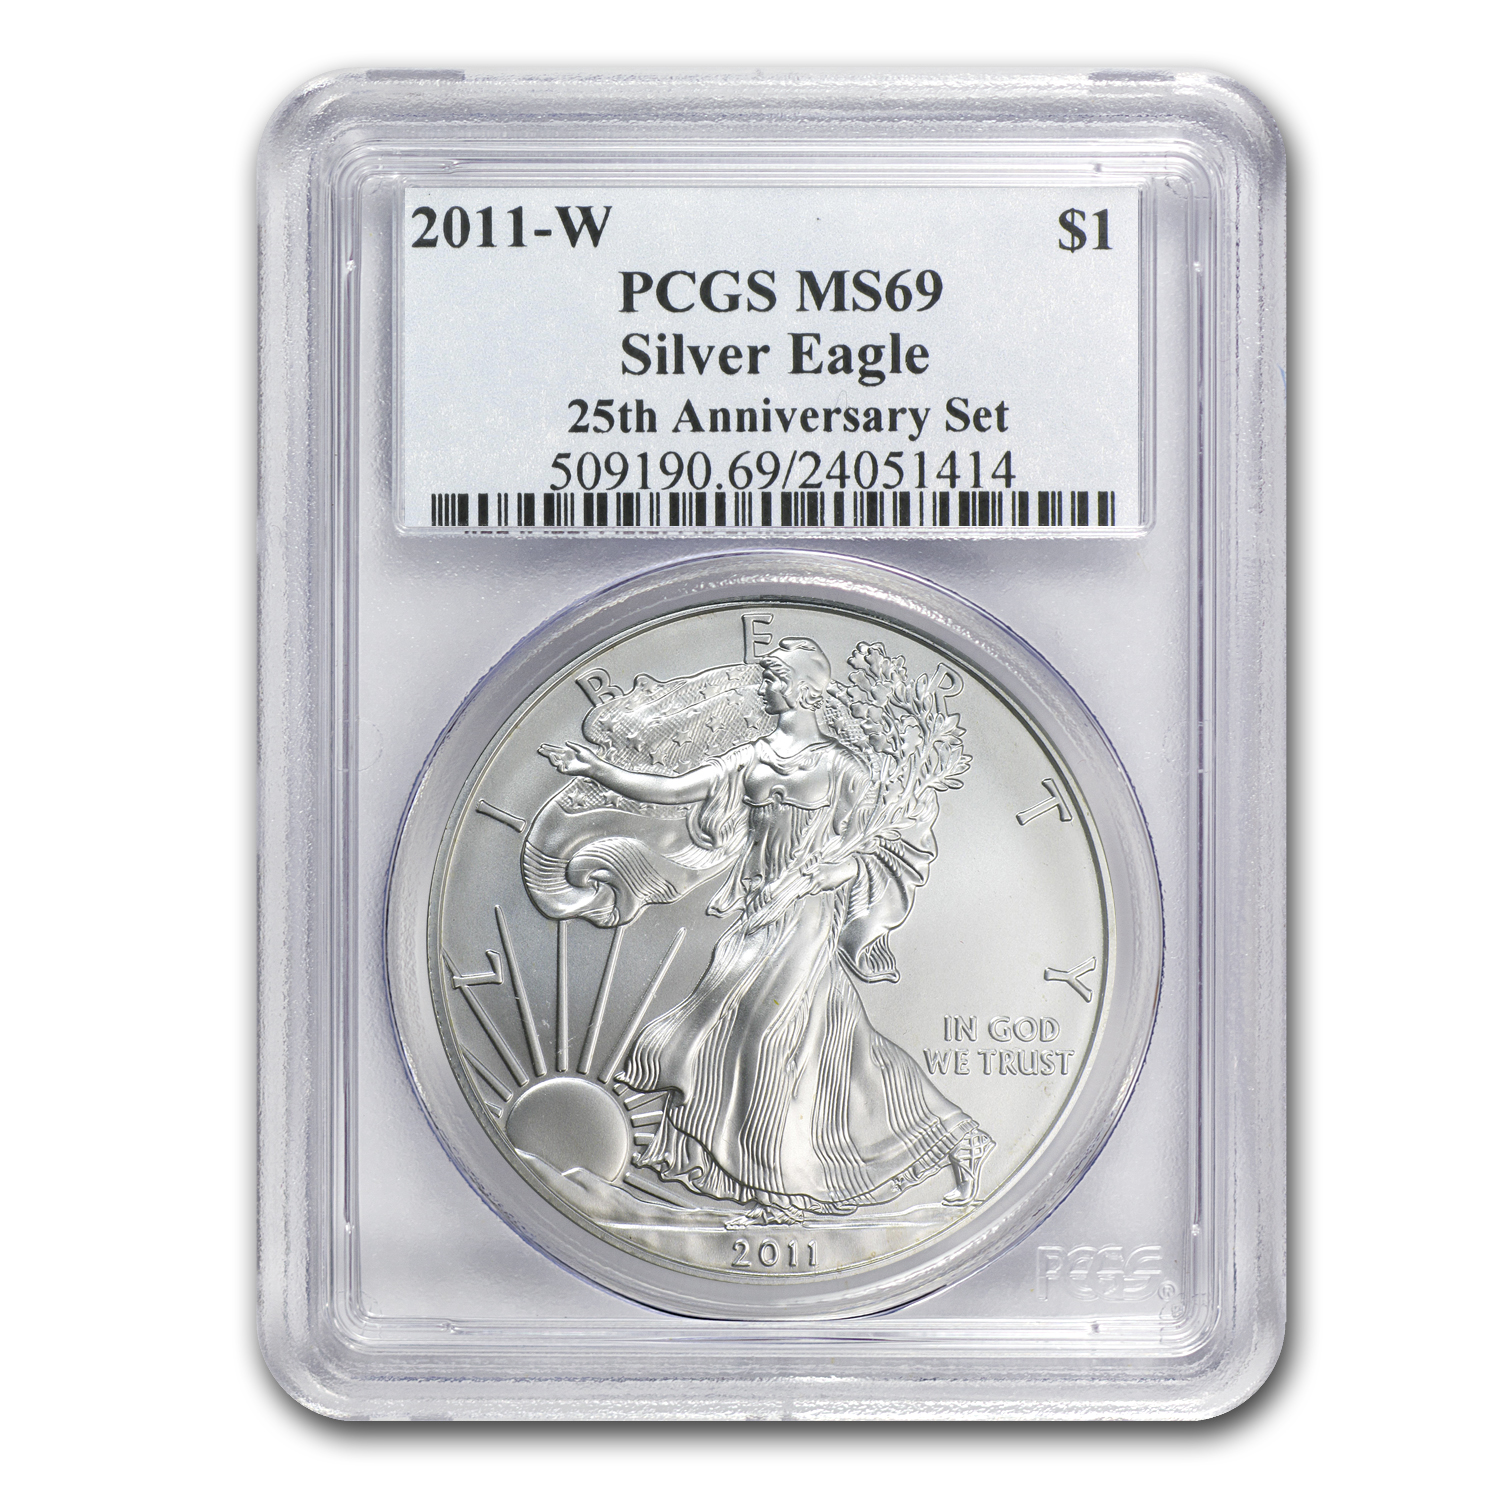 2011-W Burnished Silver Eagle 25th Anniv MS-69 PCGS Blue Label